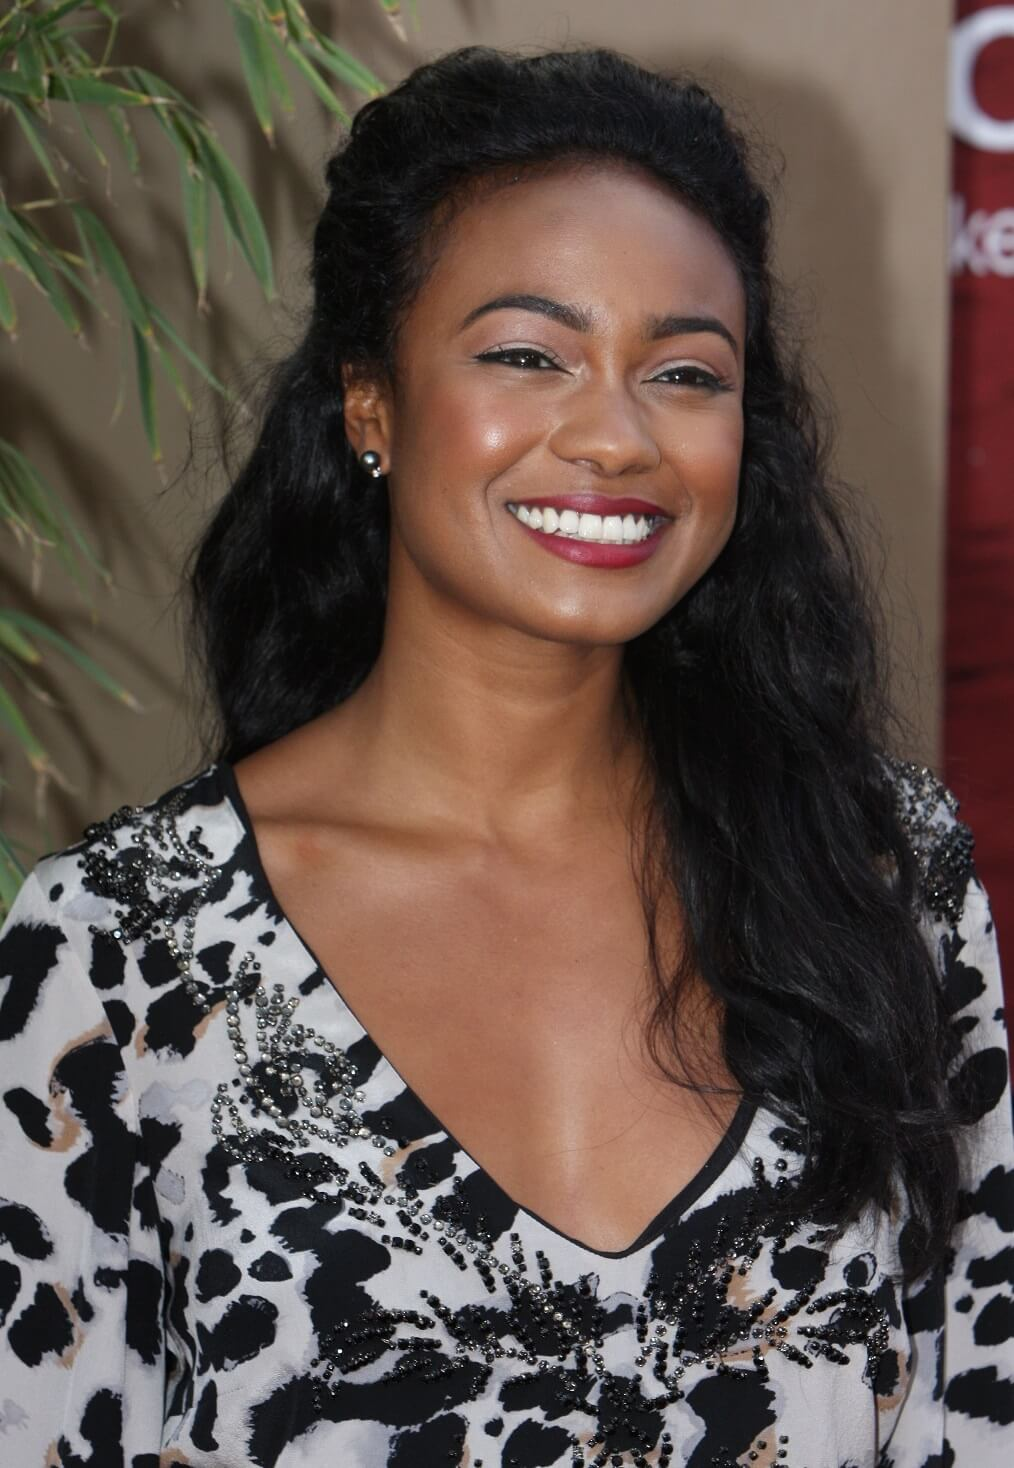 49 Hottest Tatyana Ali Bikini Pictures Are So Damn Sexy That We Don't Deserve Her   Best Of ...